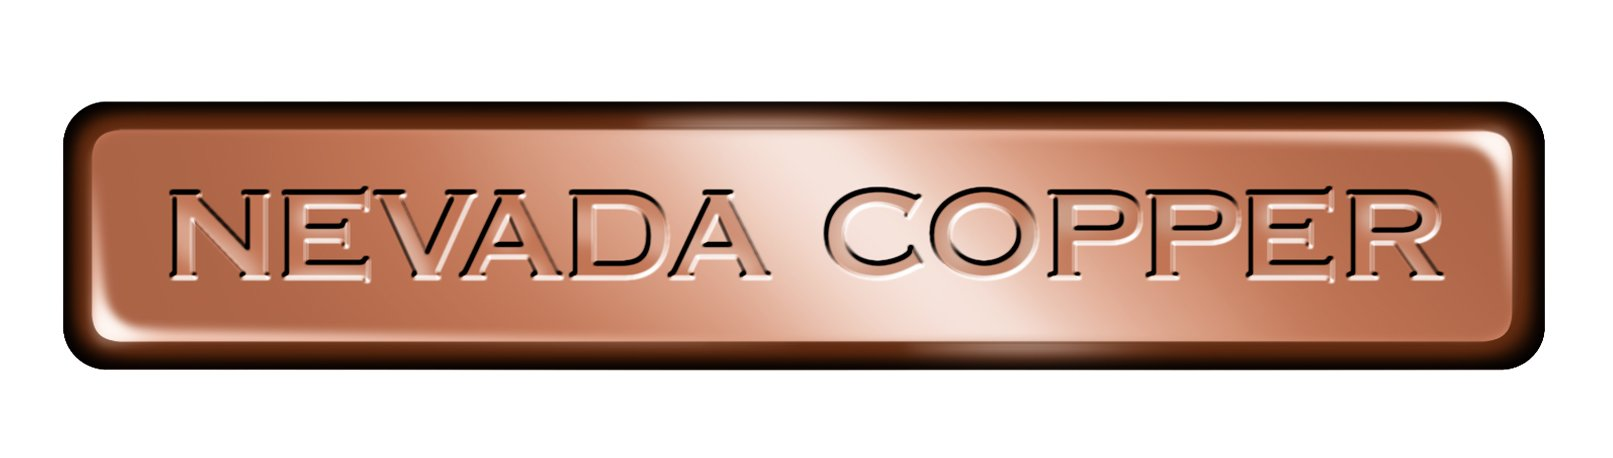 Nevada Copper logo